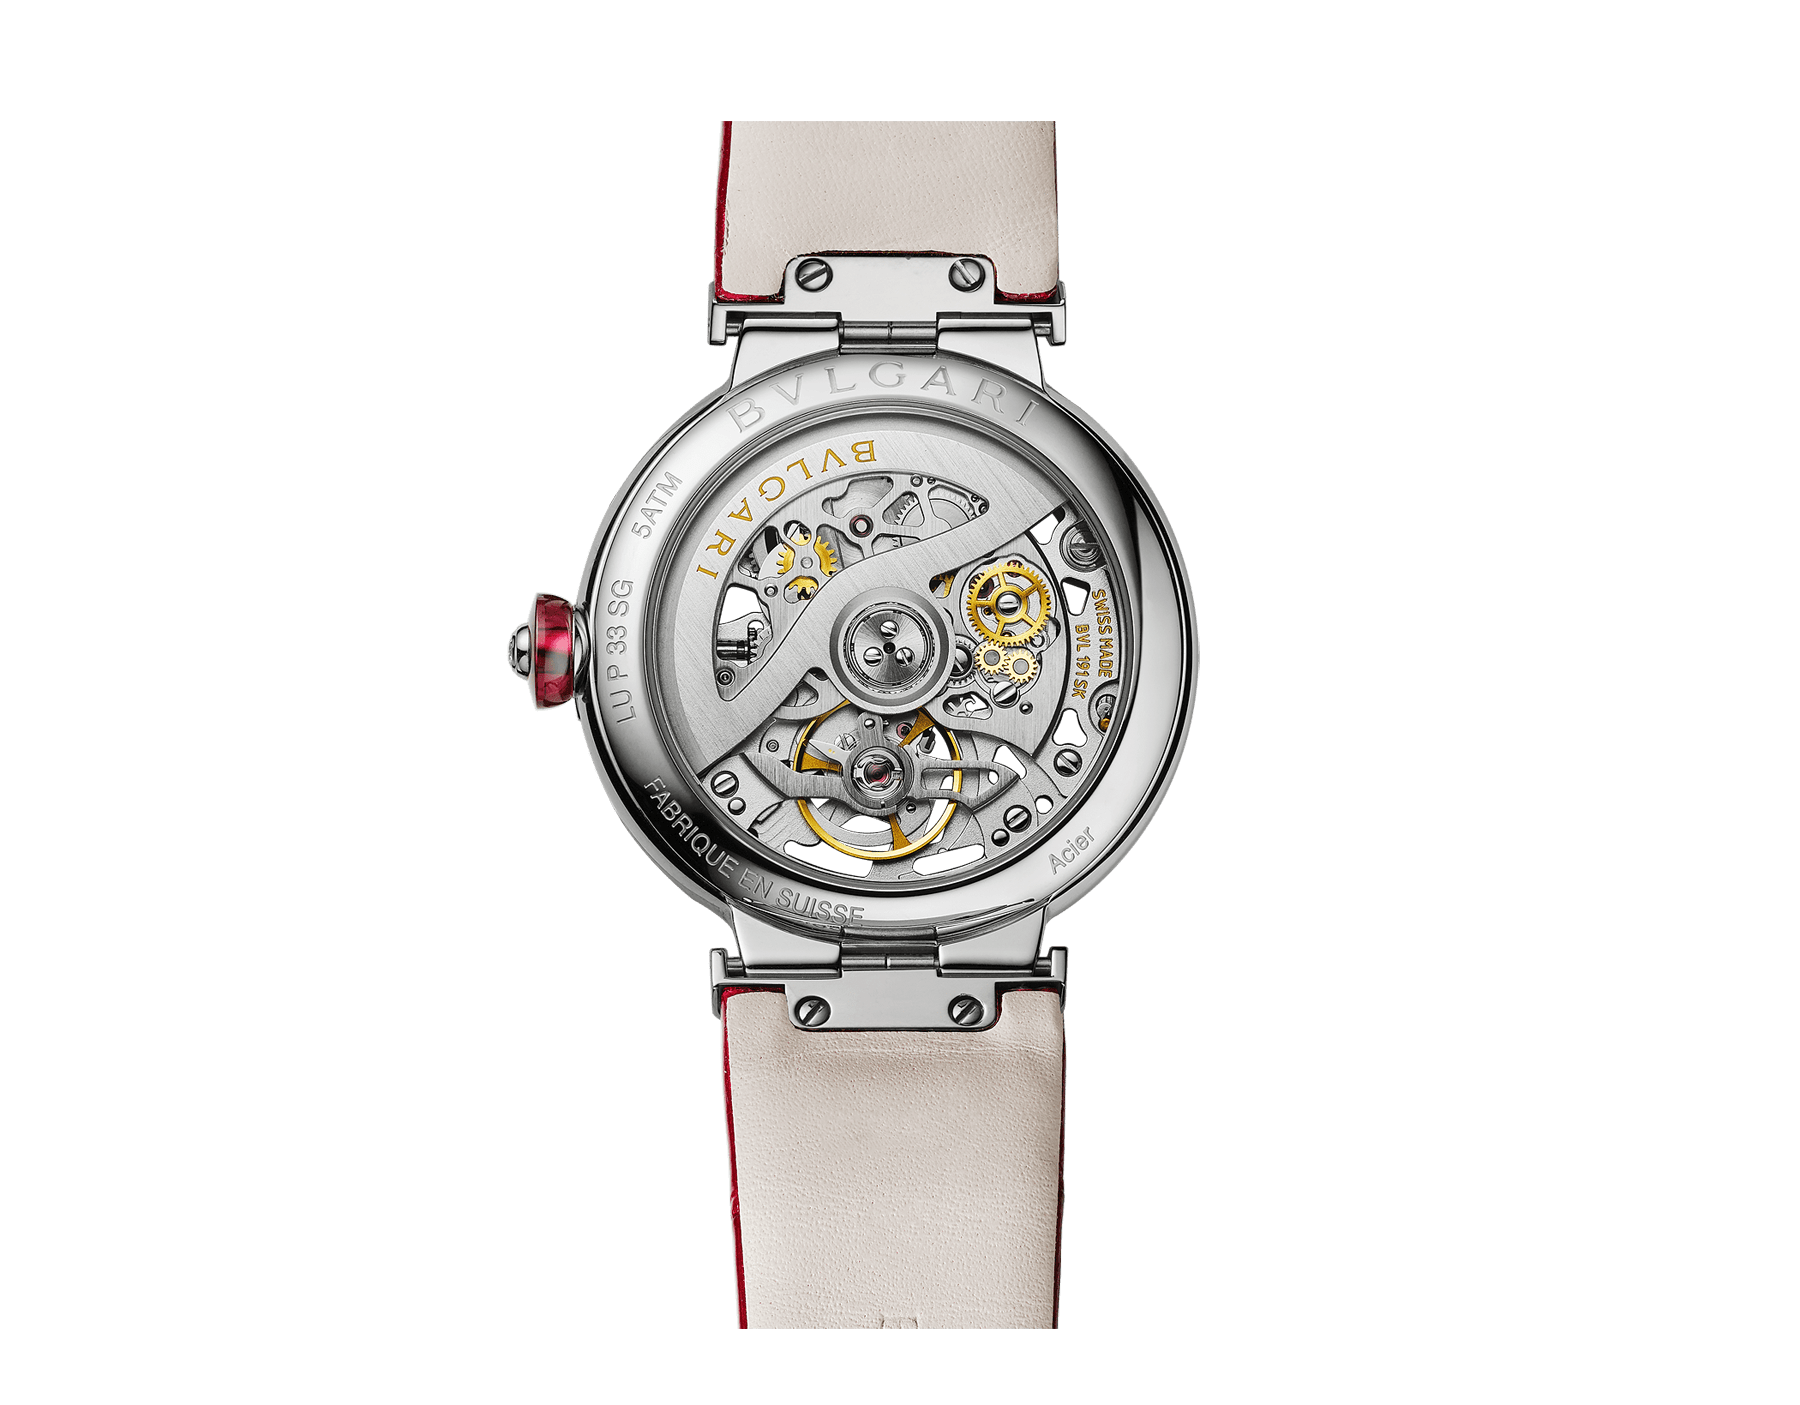 LVCEA Skeleton watch with mechanical manufacture movement, automatic winding, stainless steel case, openwork BVLGARI logo dial and red alligator bracelet 102879 image 3